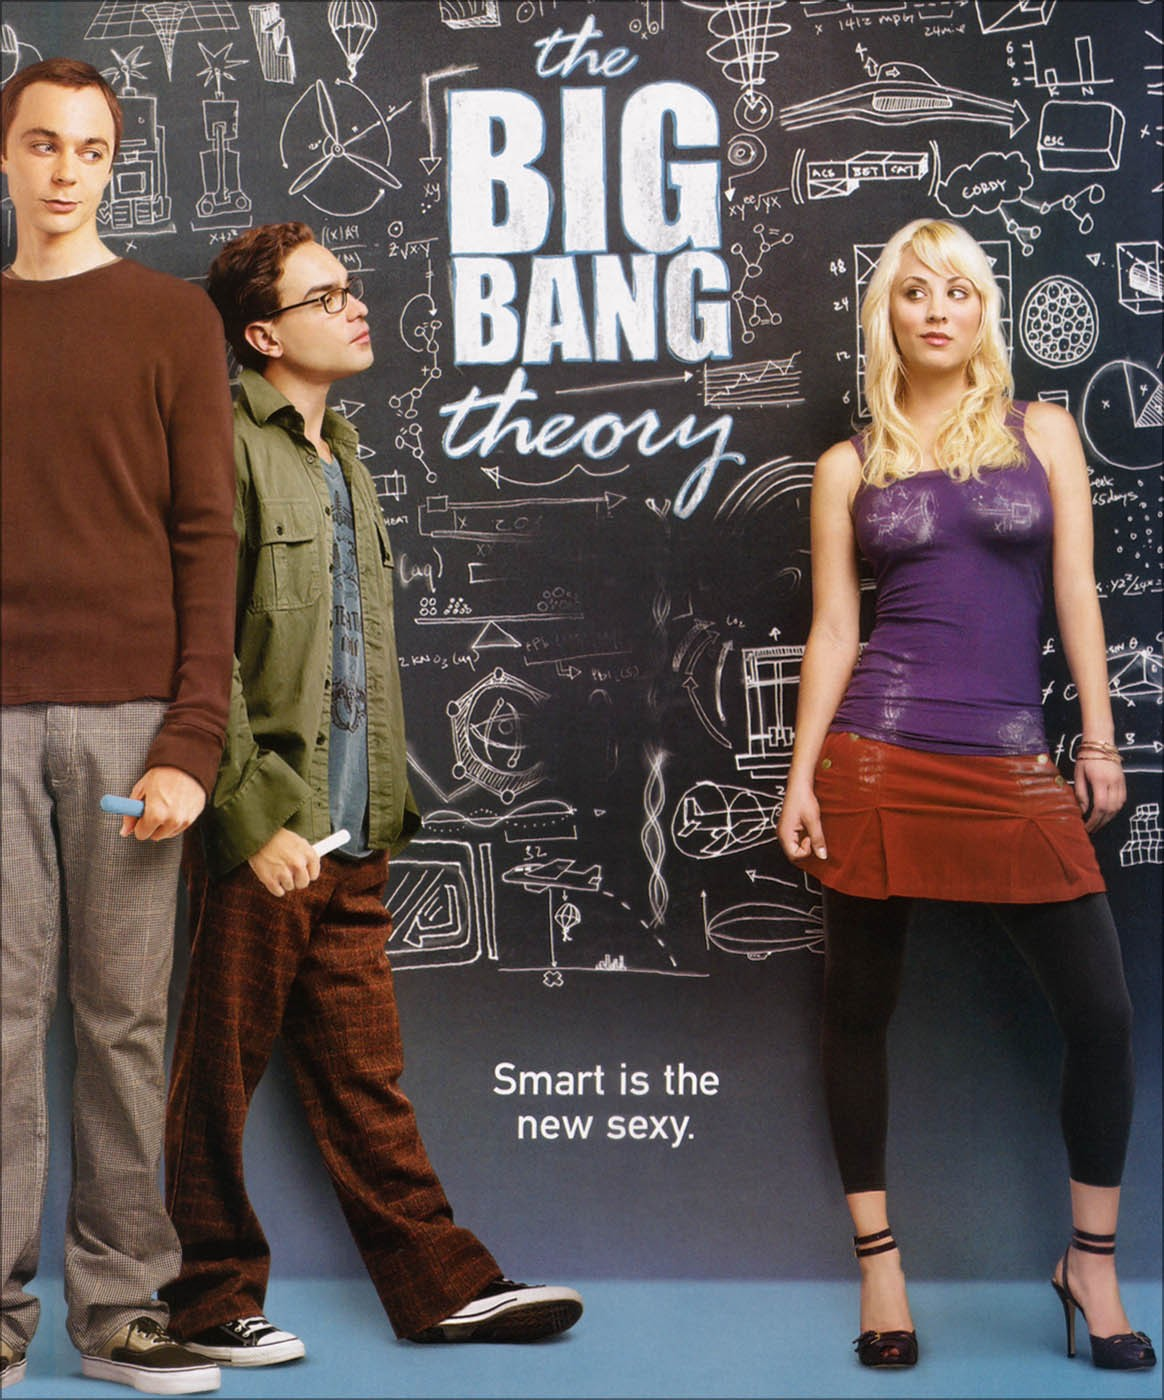 http://struckbyenlightning.files.wordpress.com/2009/07/bigbangtheory.jpg